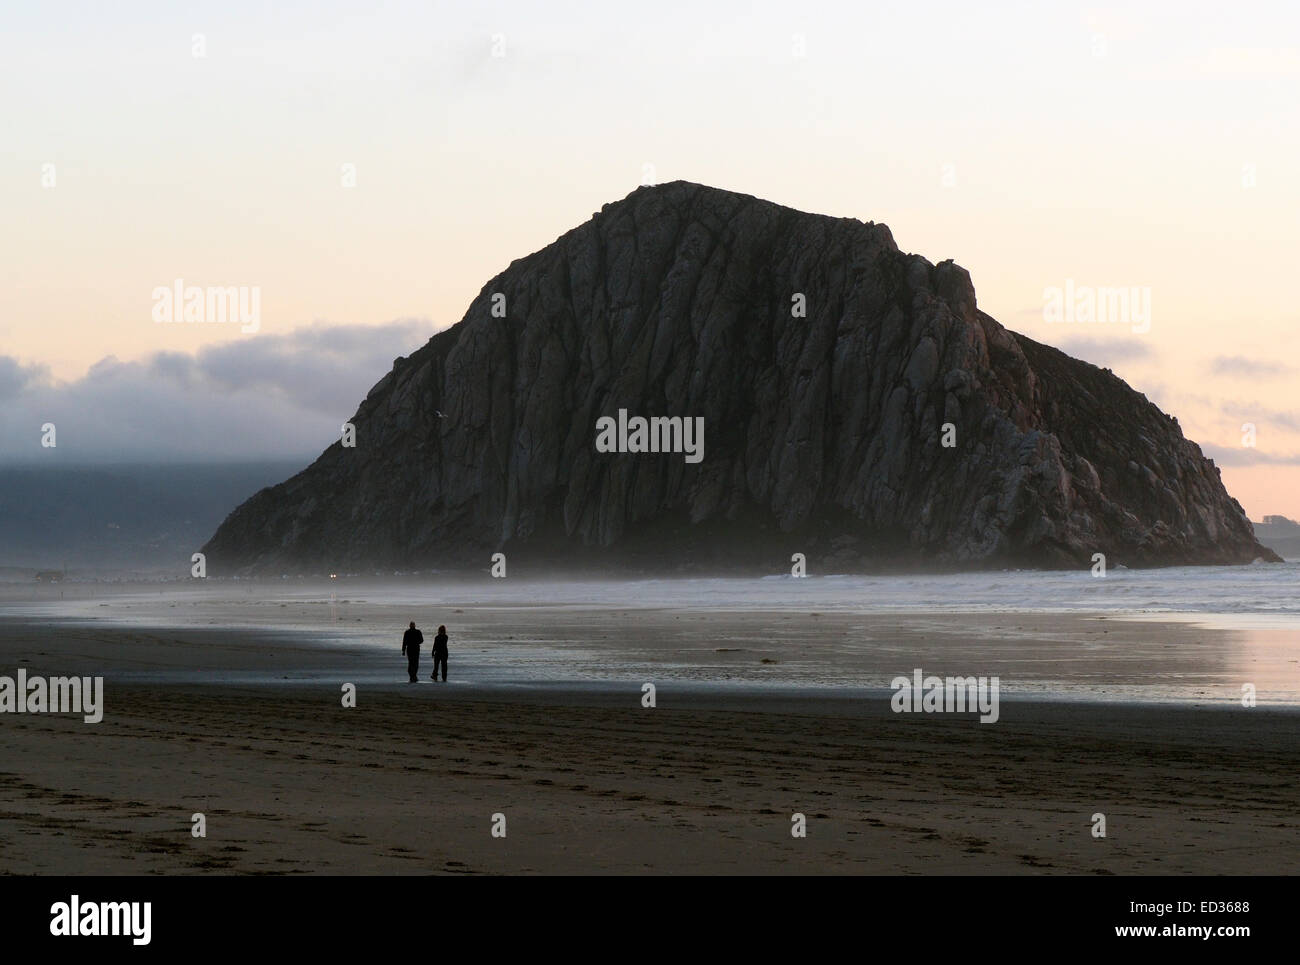 Two People Strolling on the beach near Morro Rock - Stock Image